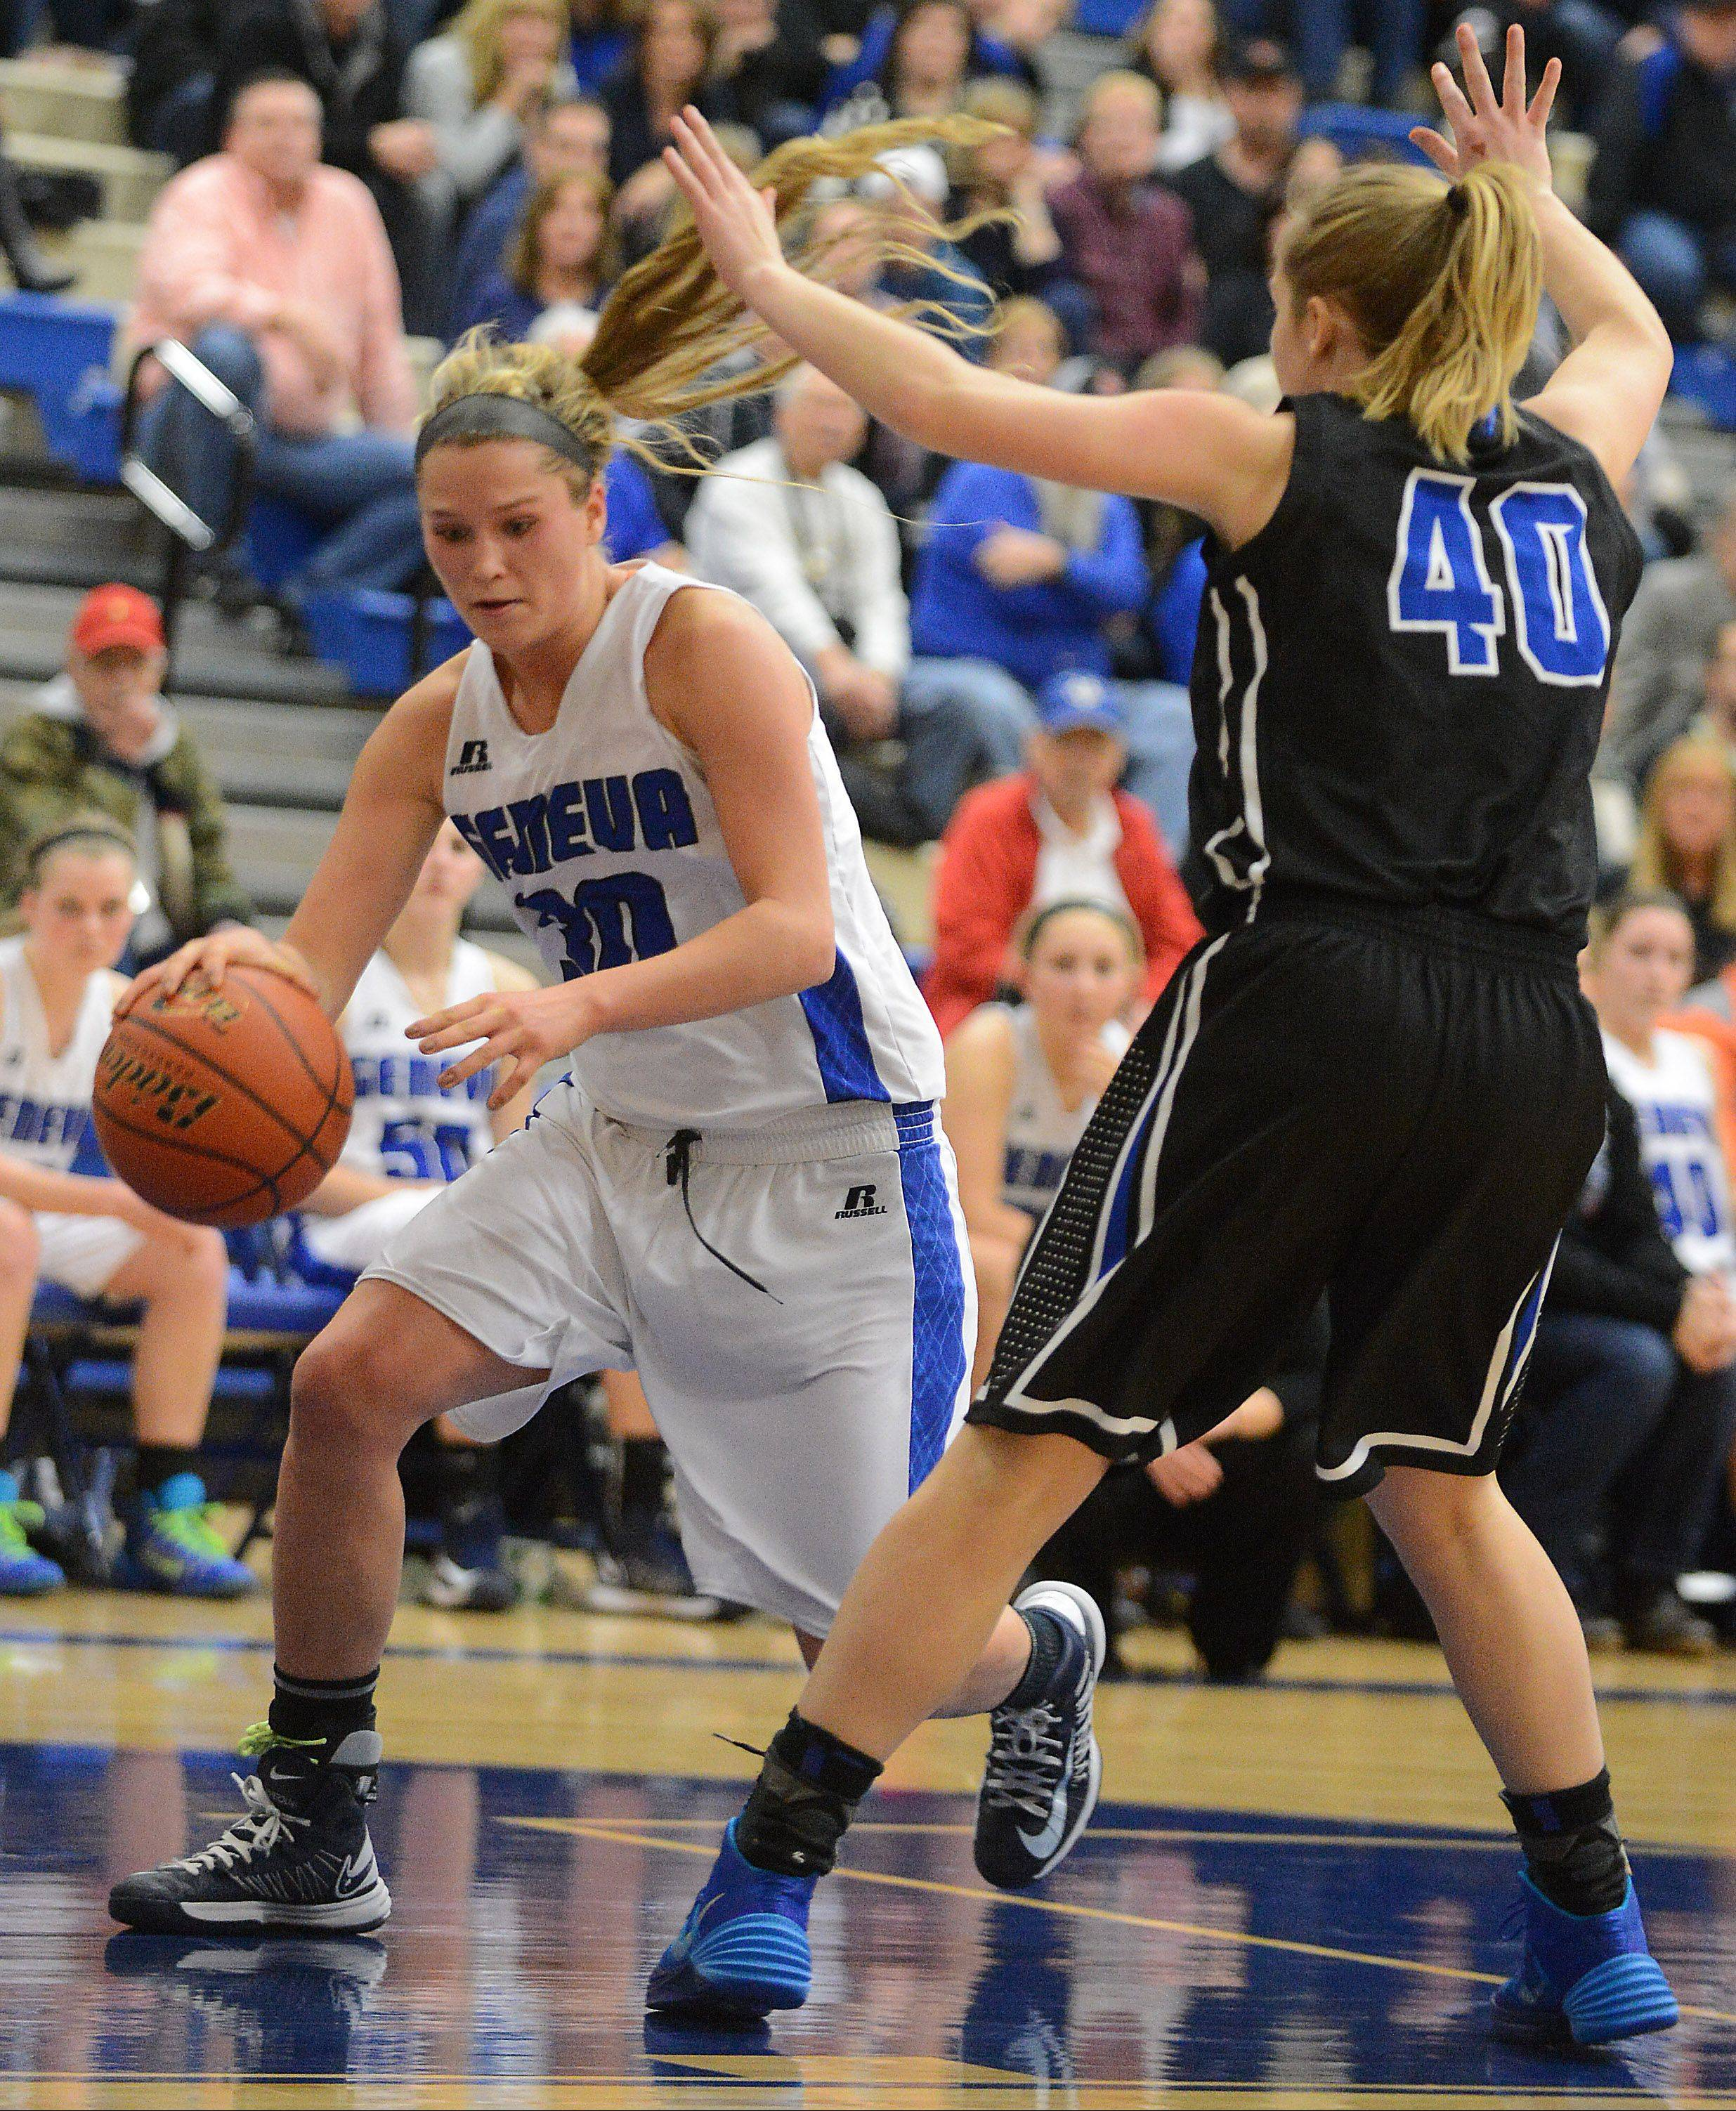 Geneva�s Janie McCloughan drives to the basket against St. Charles North�s Abby Mackay-Zacker during Friday�s game.